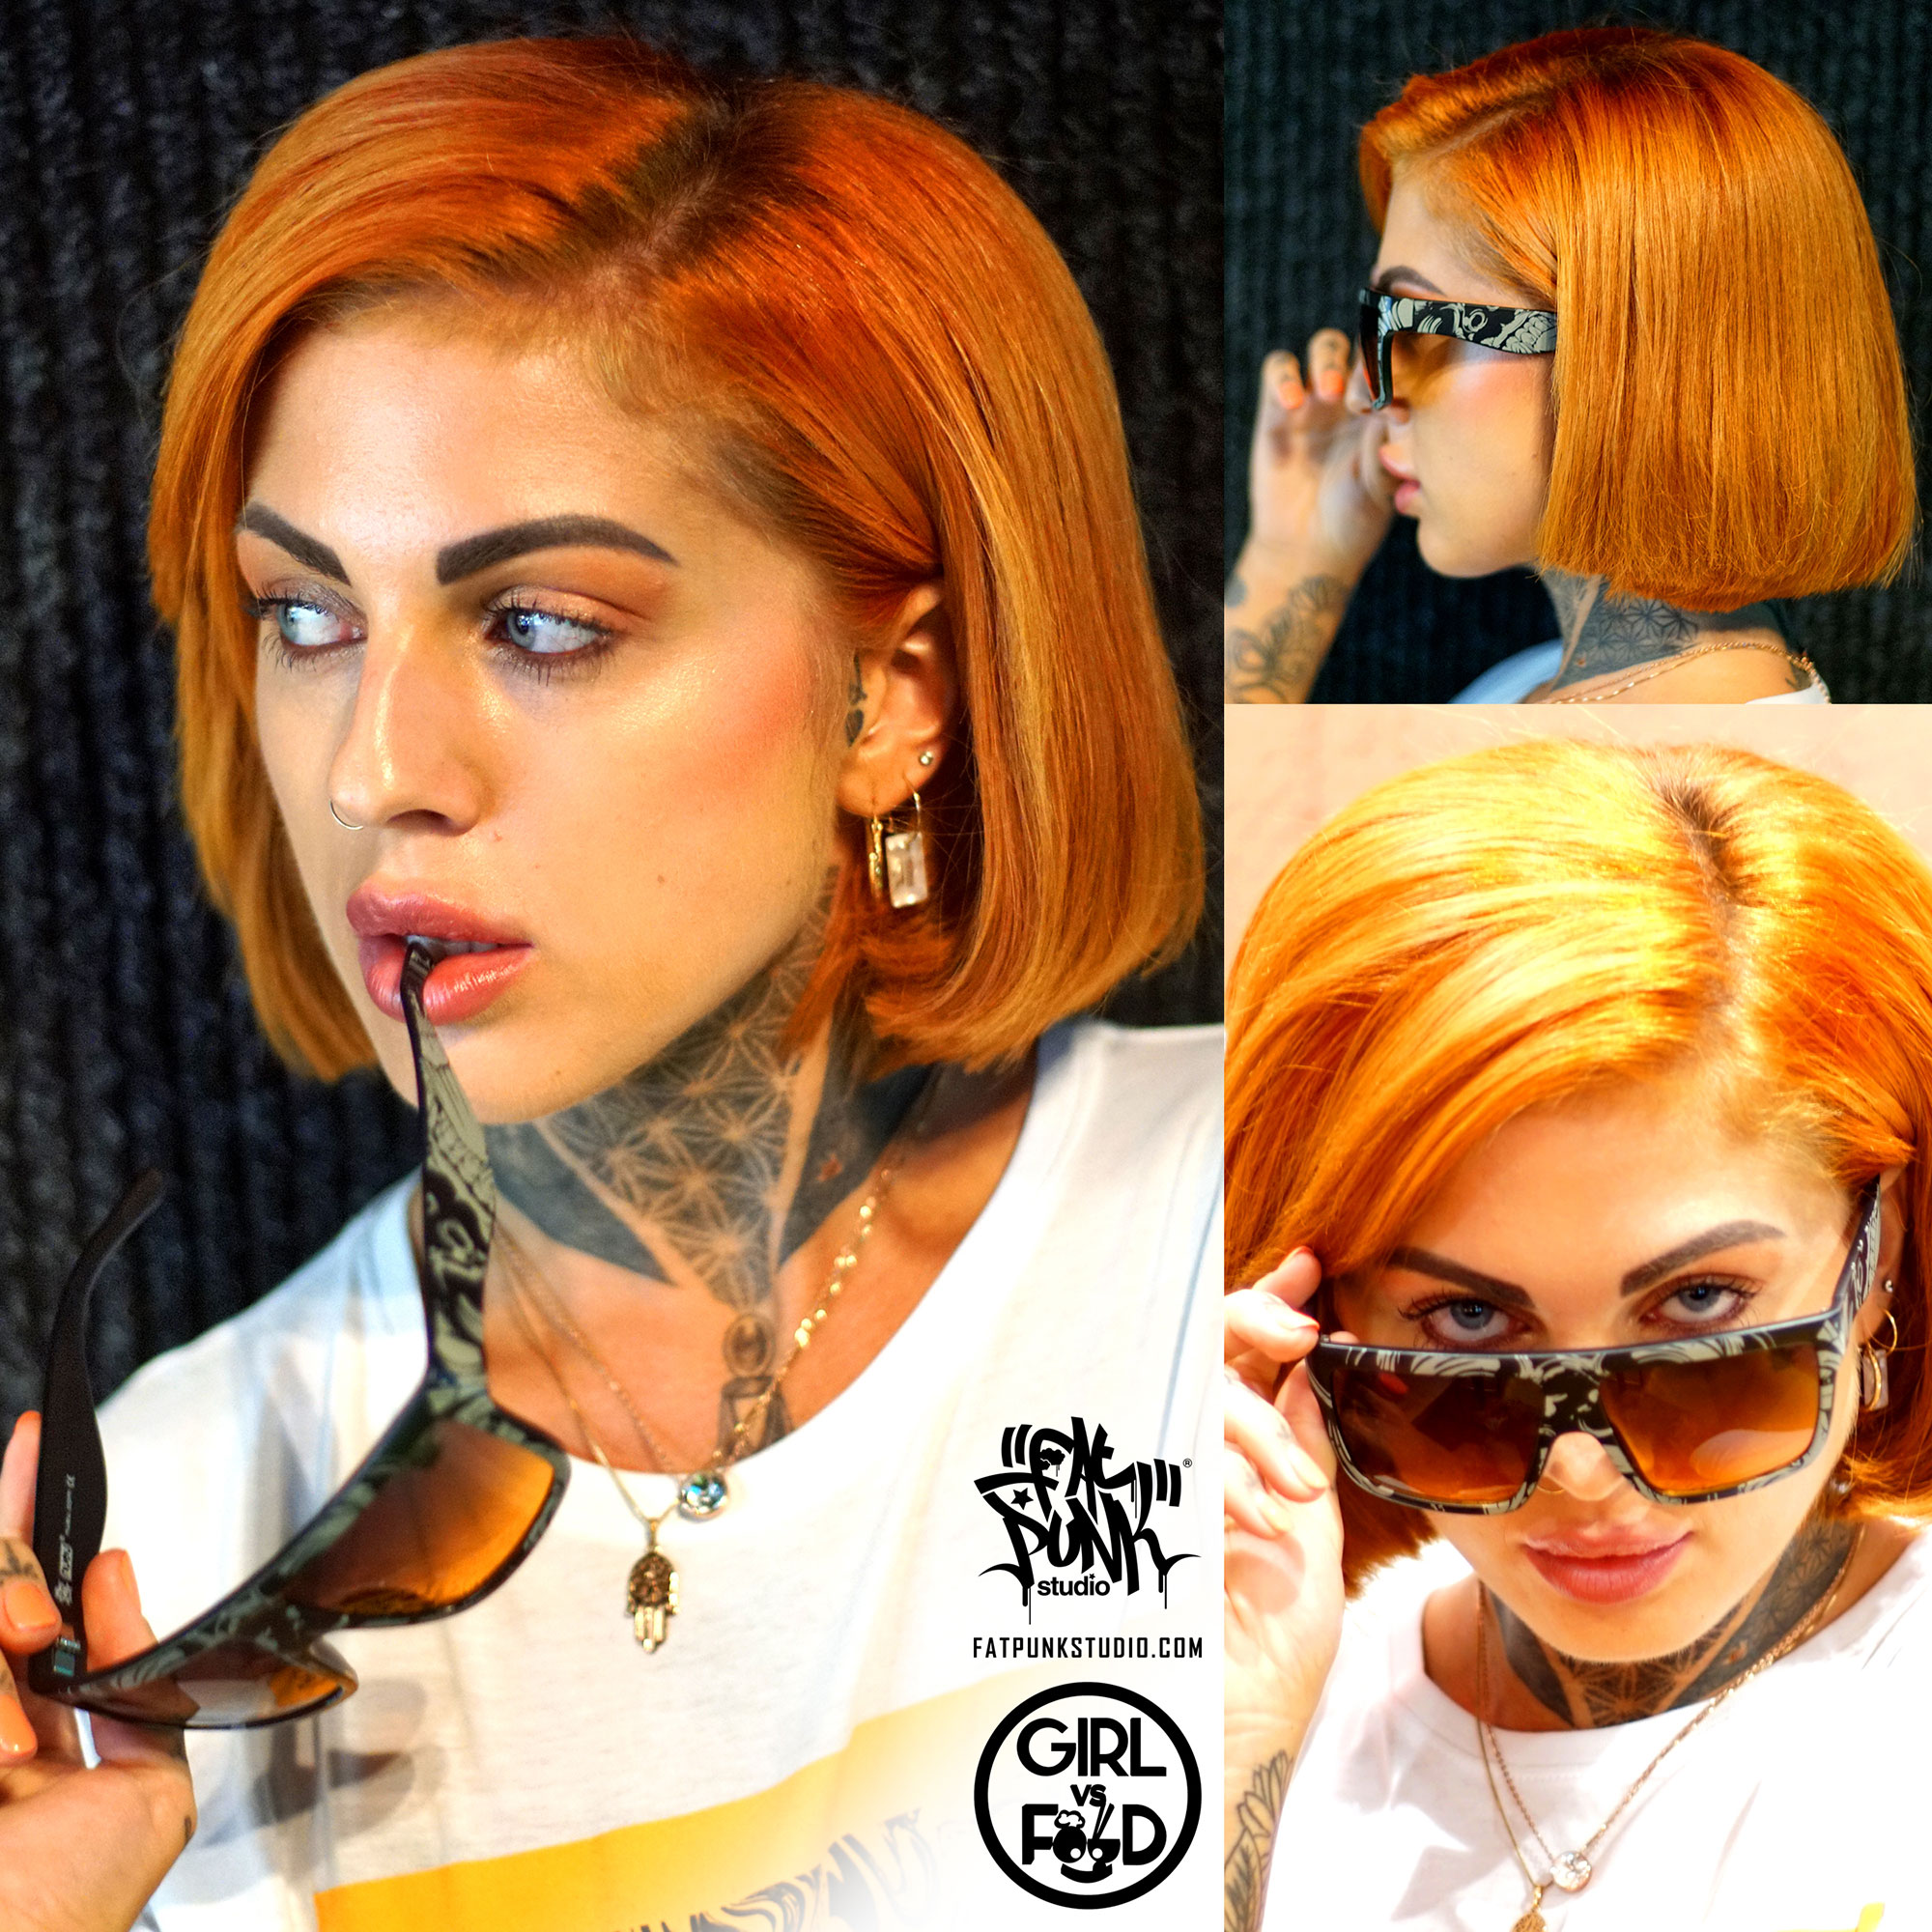 siangworld-girl-v-food-fat-punk-studio-03